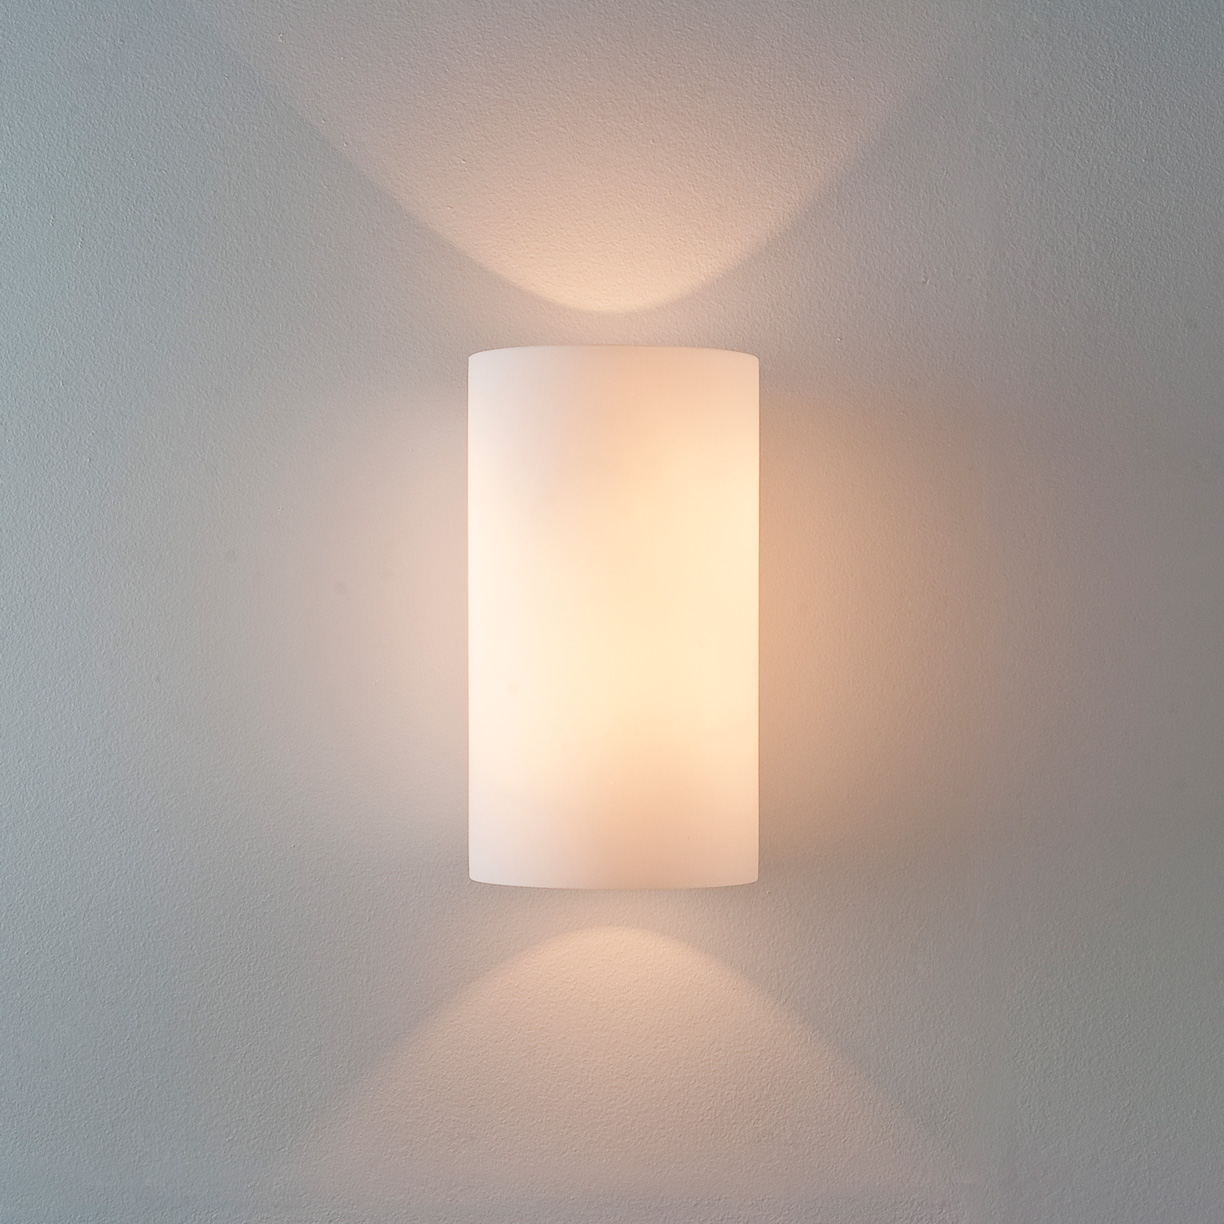 Astro Cyl 260 0884 Dimmable Cylindrical Wall Light 2 X 60w